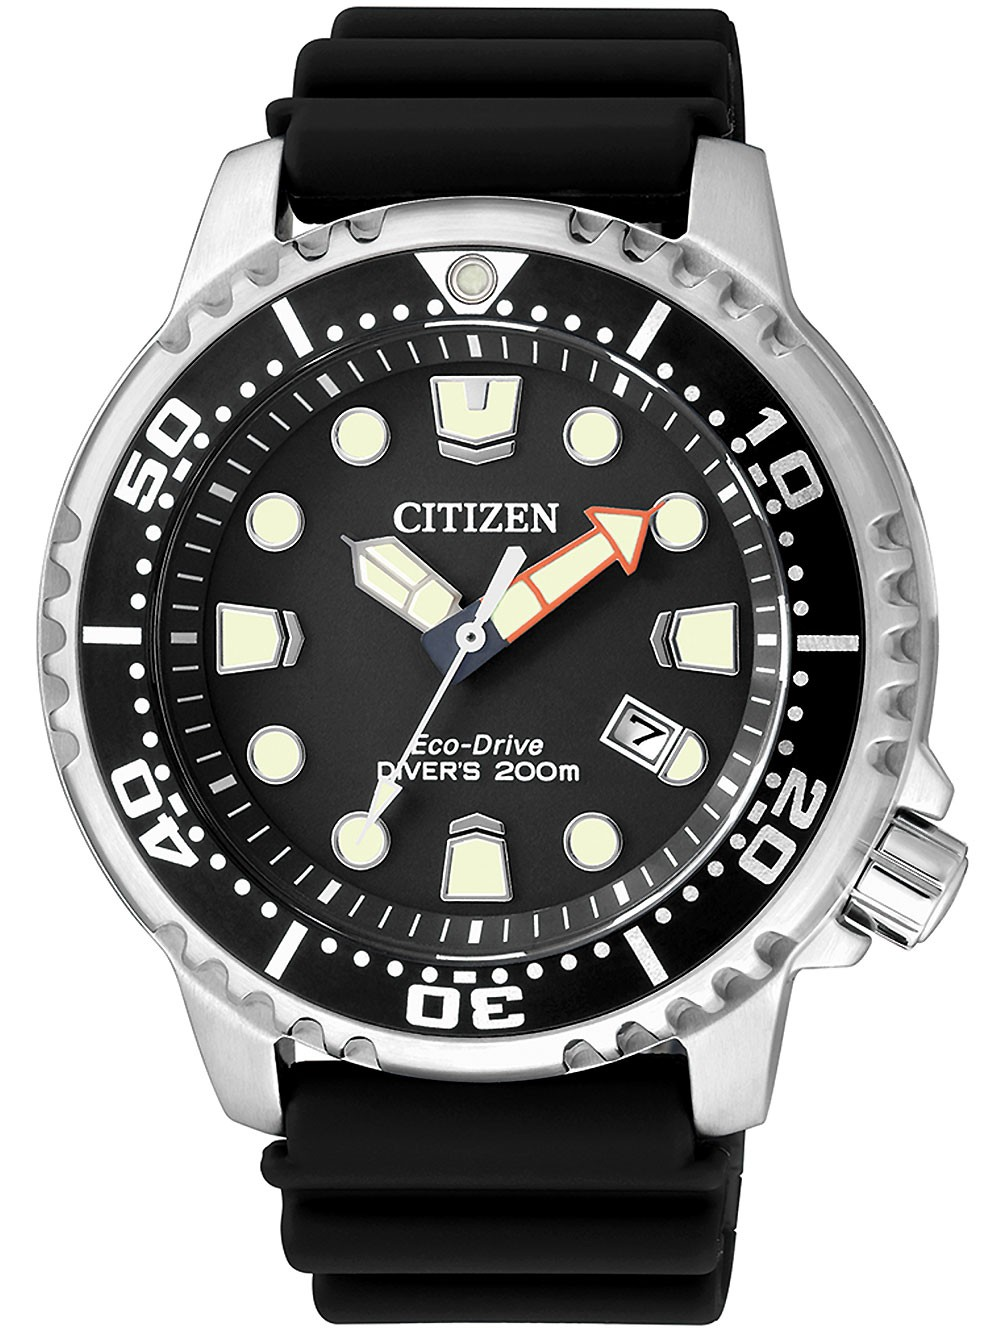 Orologio Citizen Promaster Divers 200 mt BN0150-10E - NEW 2015